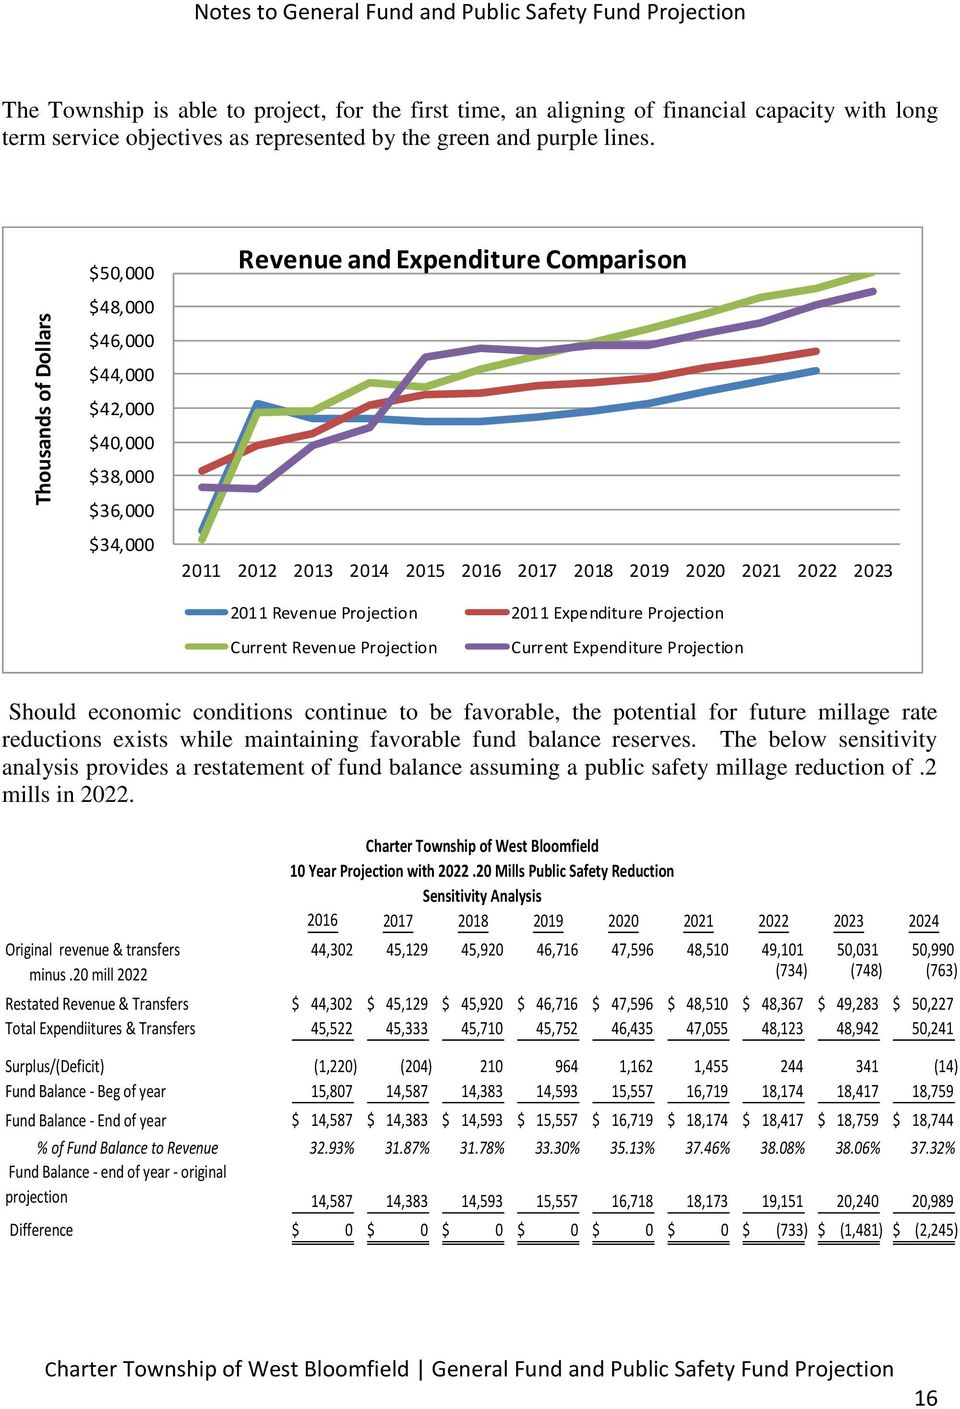 $50,000 $48,000 $46,000 $44,000 $42,000 $40,000 $38,000 $36,000 $34,000 Revenue and Expenditure Comparison 2011 2012 2013 2014 2015 2016 2017 2018 2019 2020 2021 2022 2023 2011 Revenue Projection